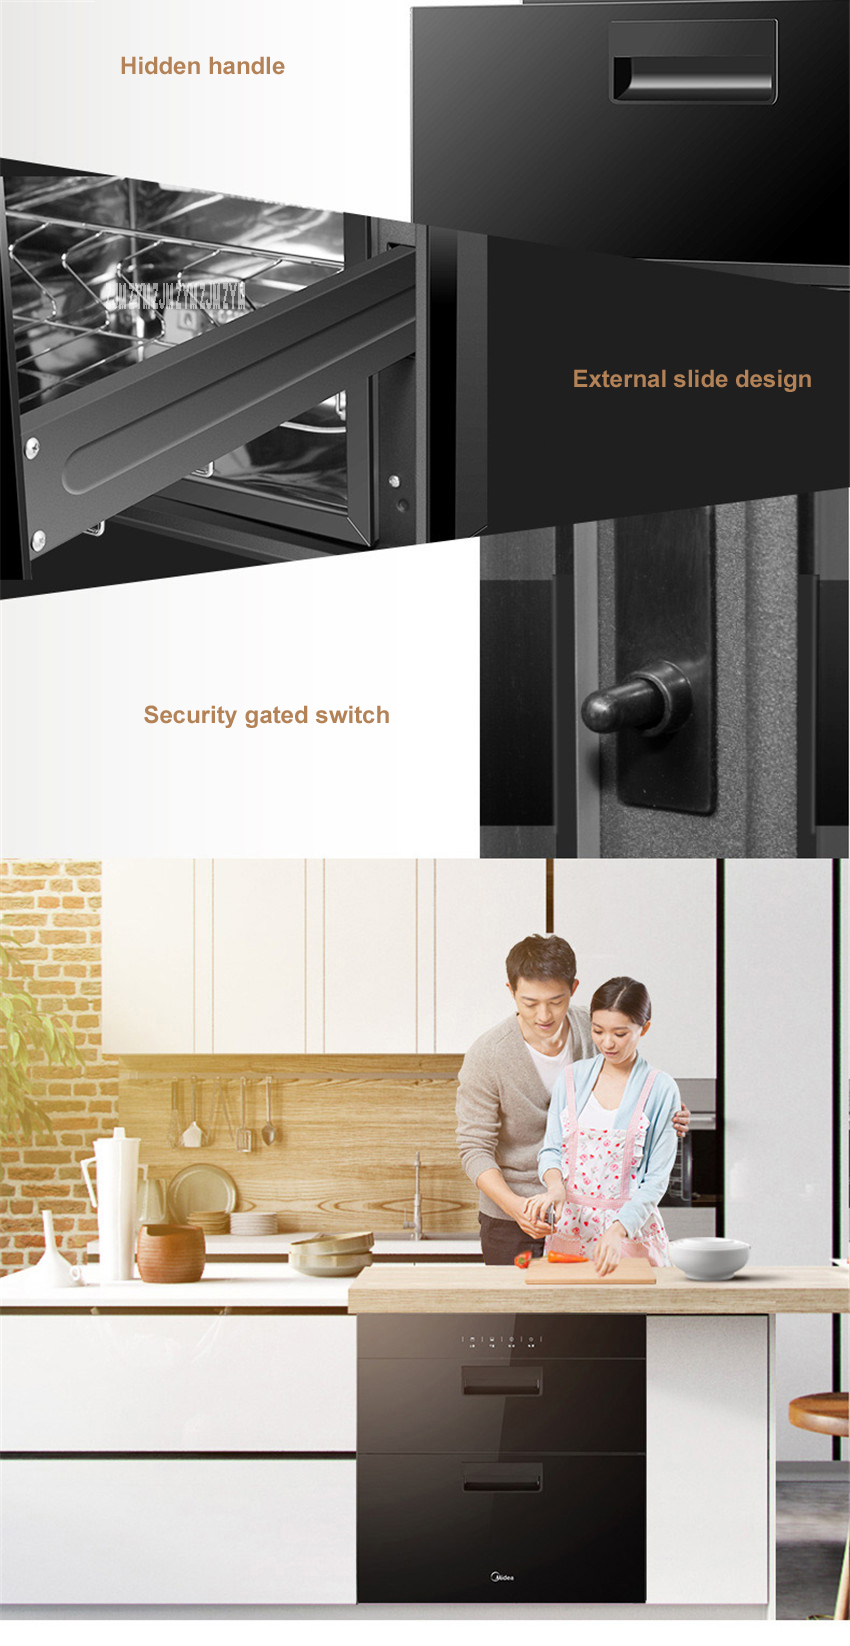 MXV-ZLP90Q15 kitchen 86L electronic touch control embedded disinfection cabinet infrared ultraviolet disinfection cupboard 7